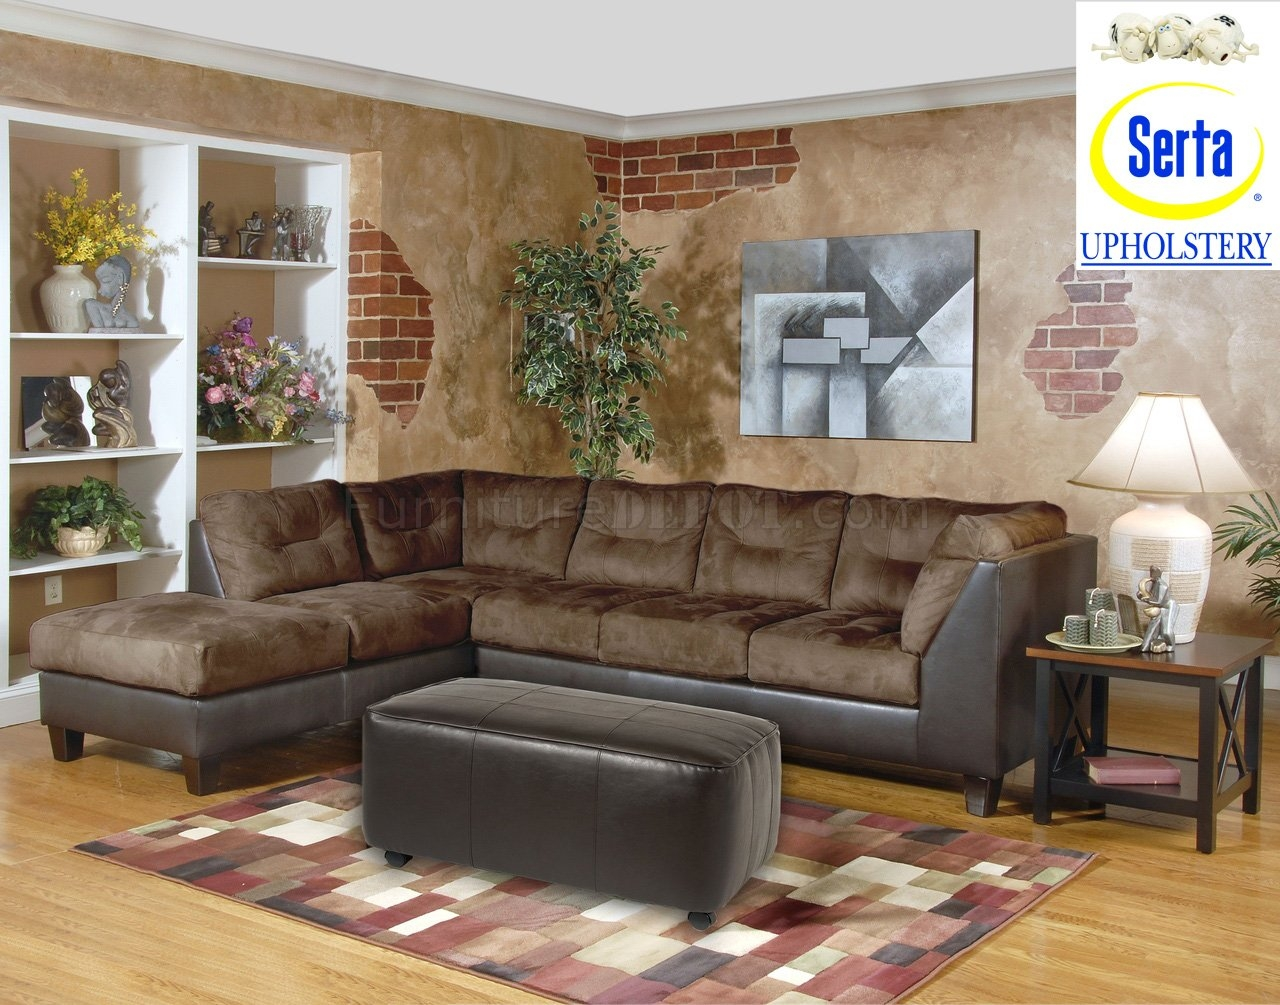 Sectionals Used Sectionals For Sale Sectional Sofa Craigslist With Regard To Craigslist Sectional Sofa (# : craigslist sectional sofa - Sectionals, Sofas & Couches